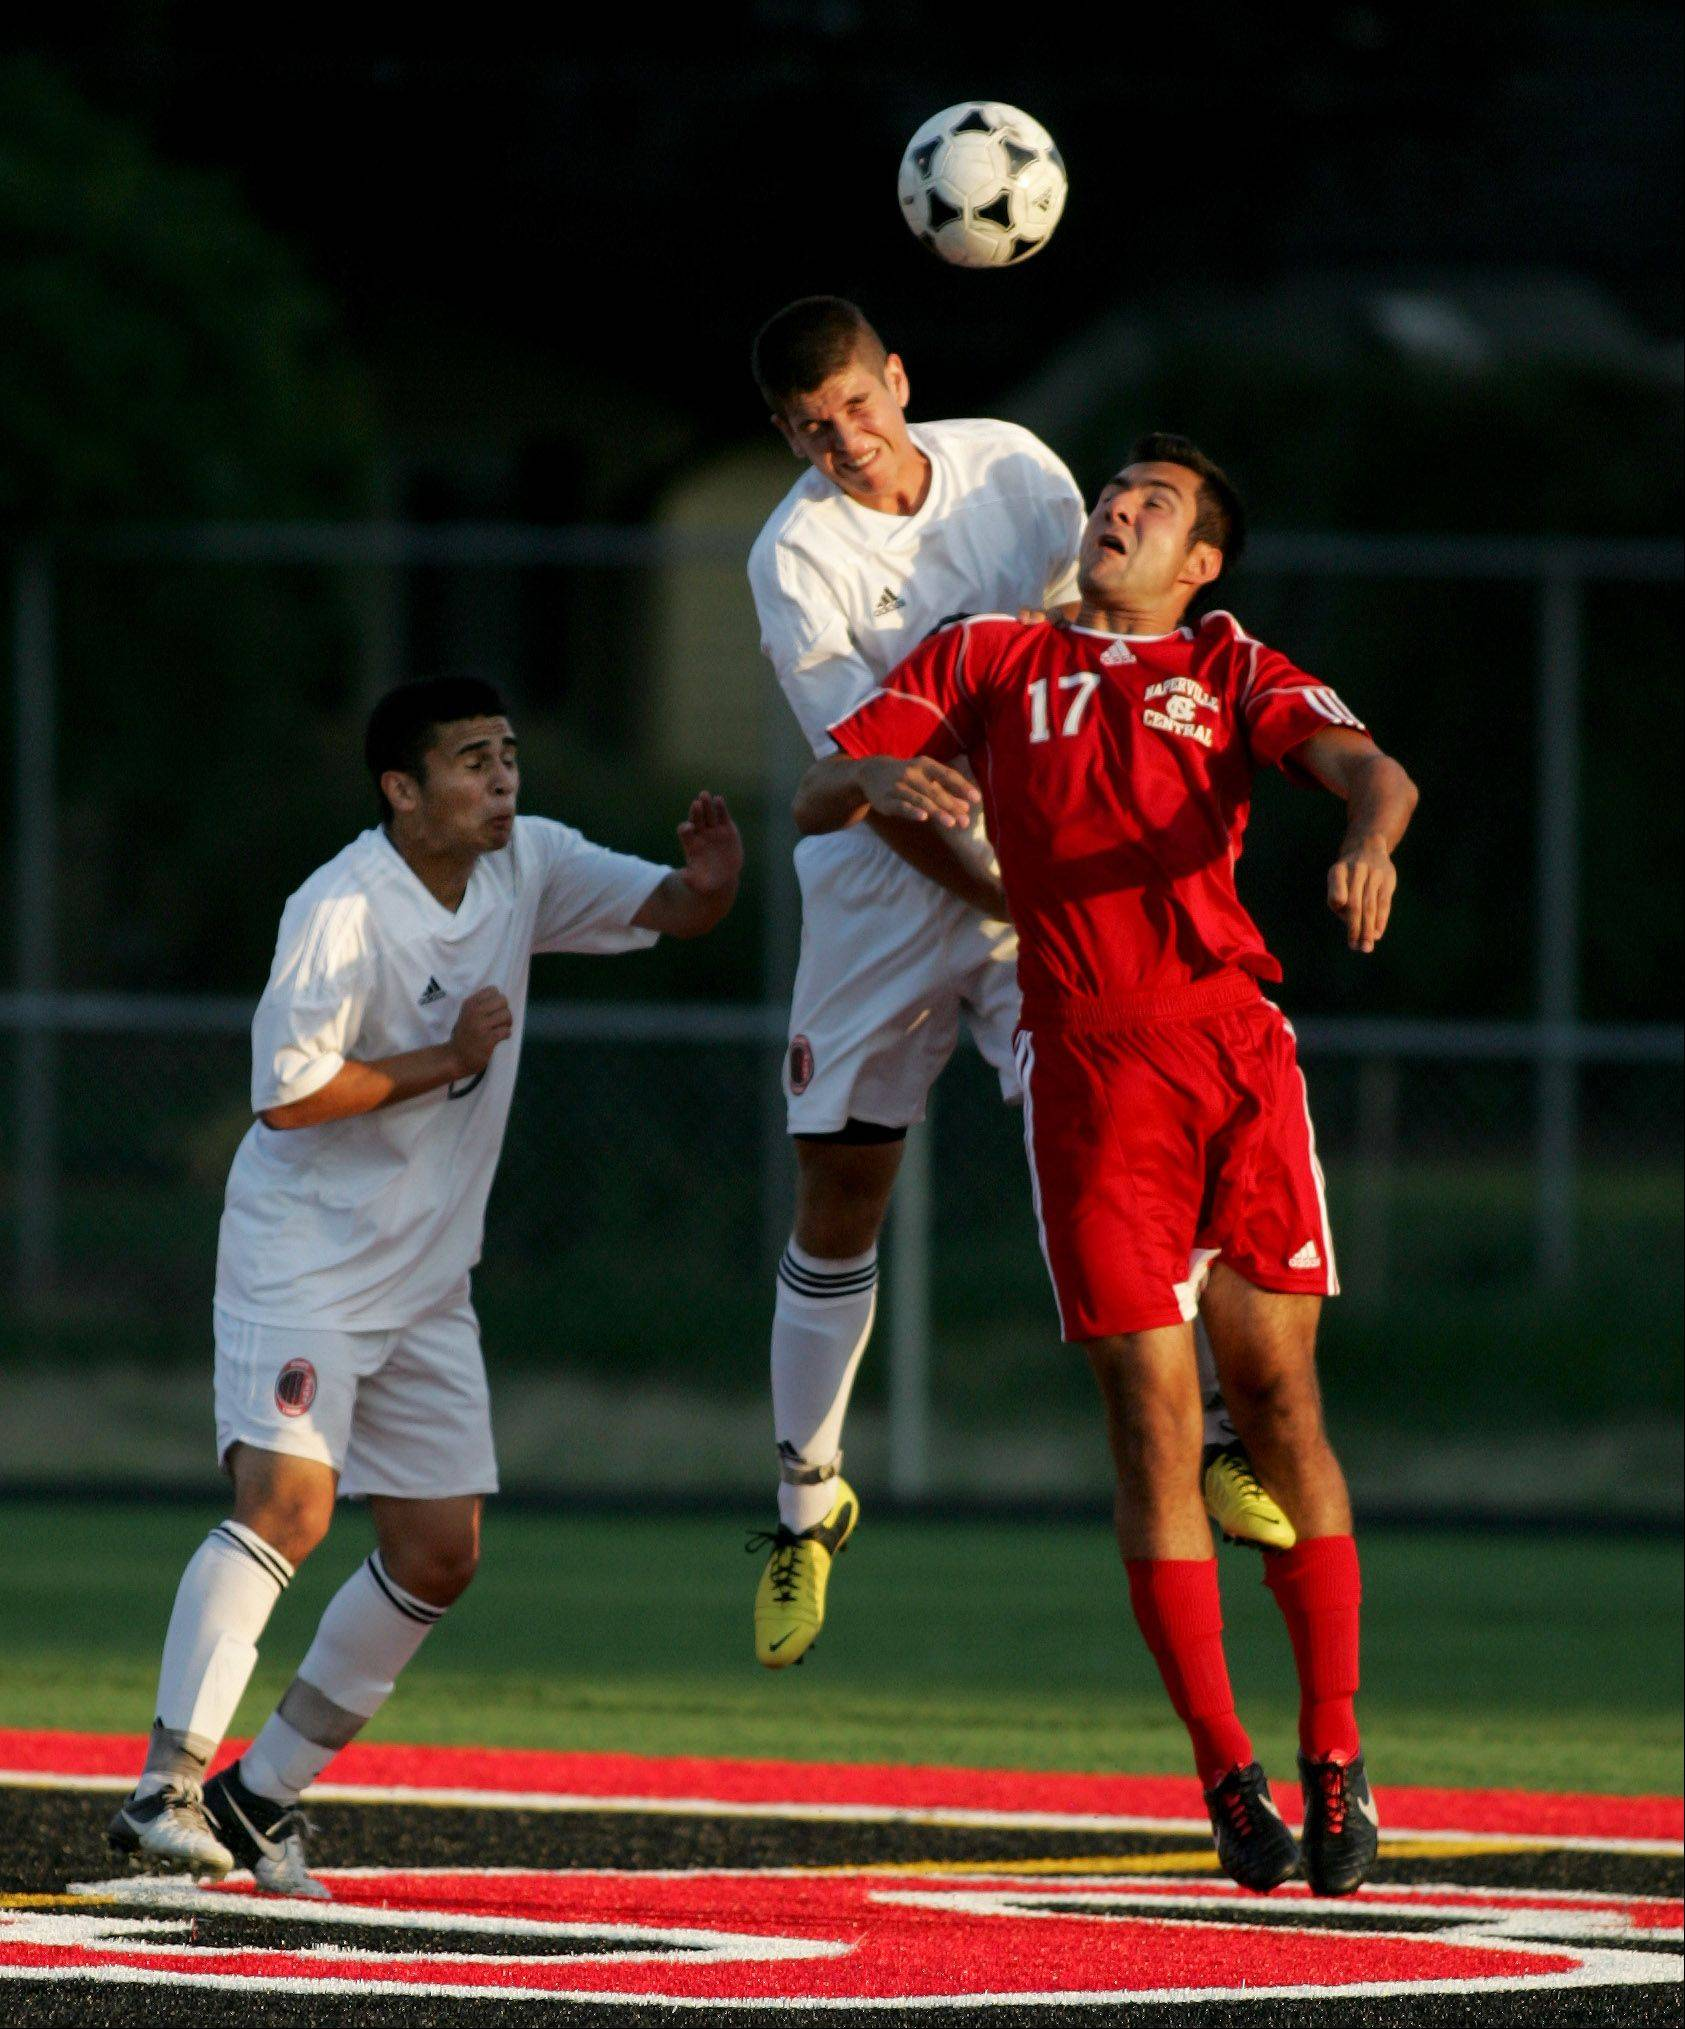 Carlos Urbina, from left, Matt Rossetti, of Glenbard East and Connor Allen of Naperville Central in boys soccer action Tuesday in Lombard.